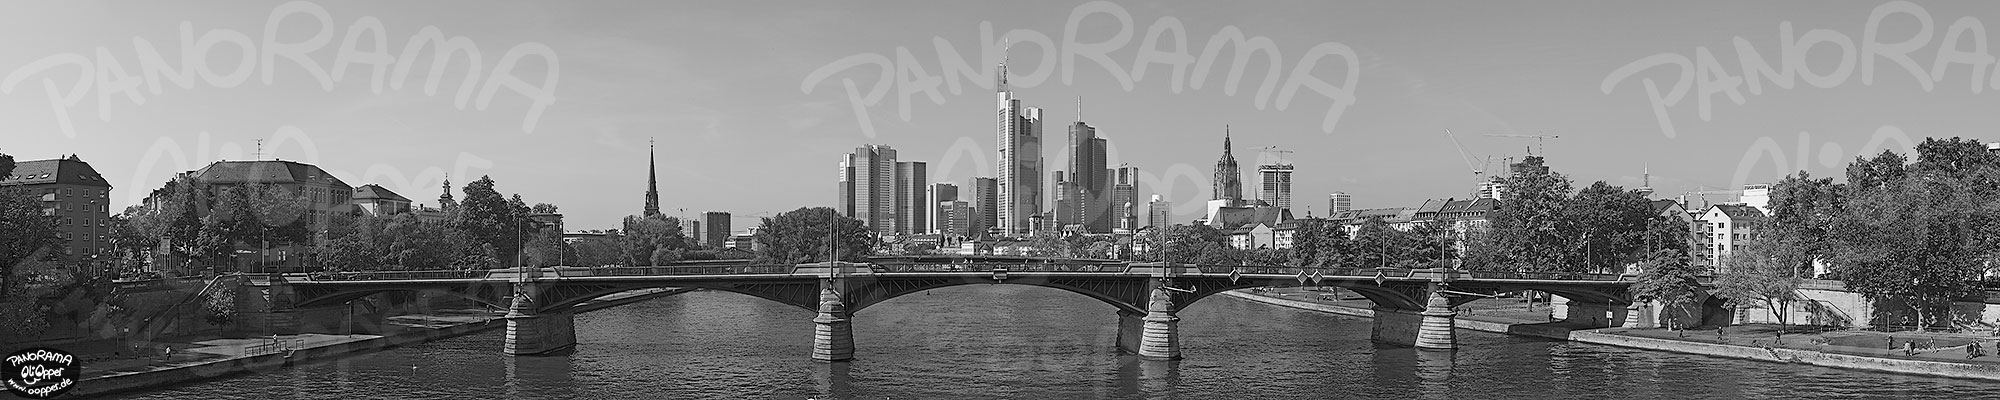 Panorama Frankfurt - Skyline am Tag - p8308 - (c) by Oliver Opper